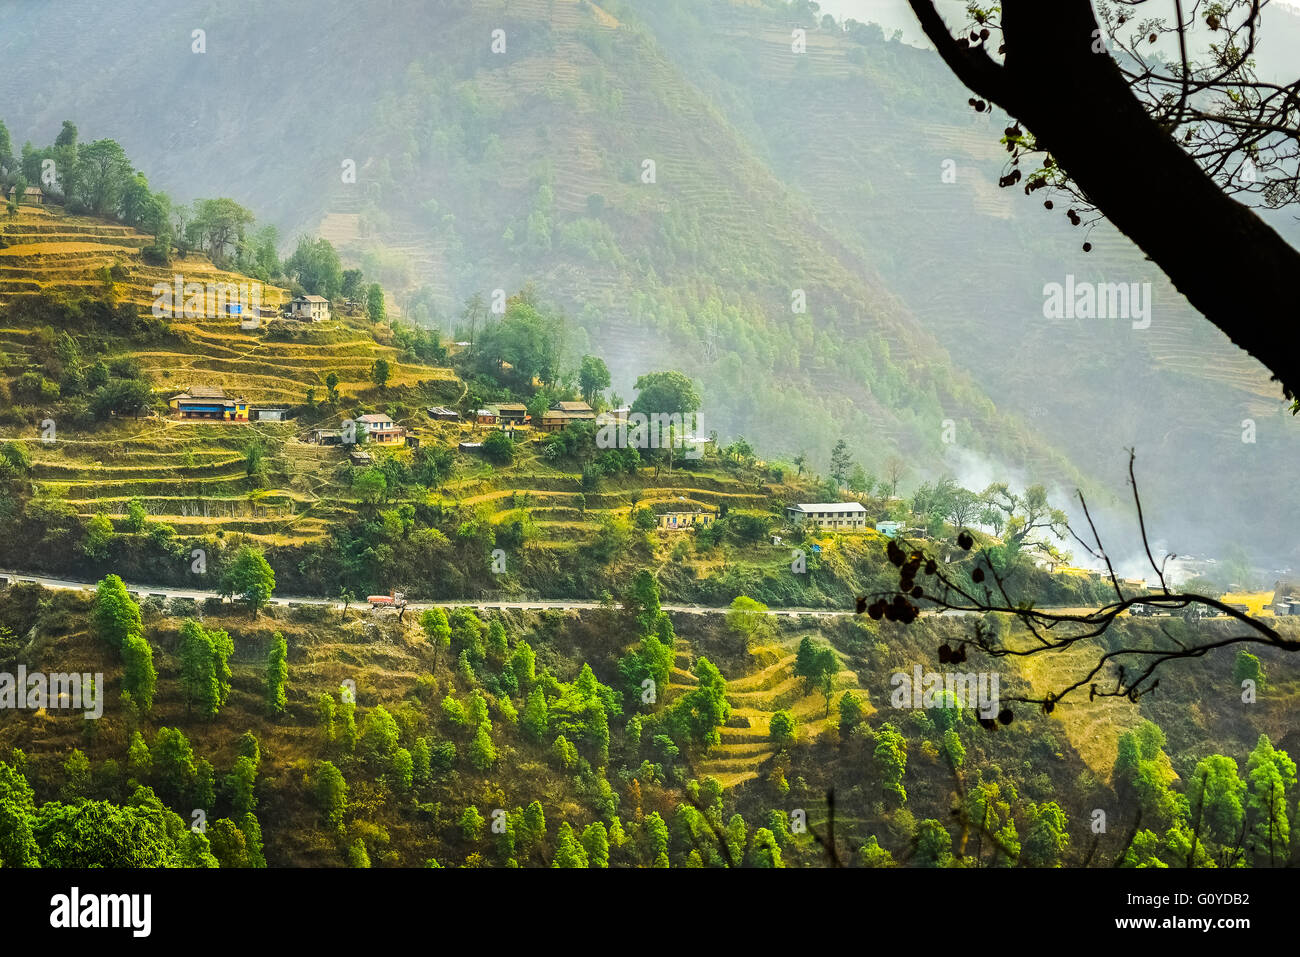 Landscape of agricultural terraces between Bhaktapur and Dhulikhel in Nepal. © Reynold Sumayku - Stock Image